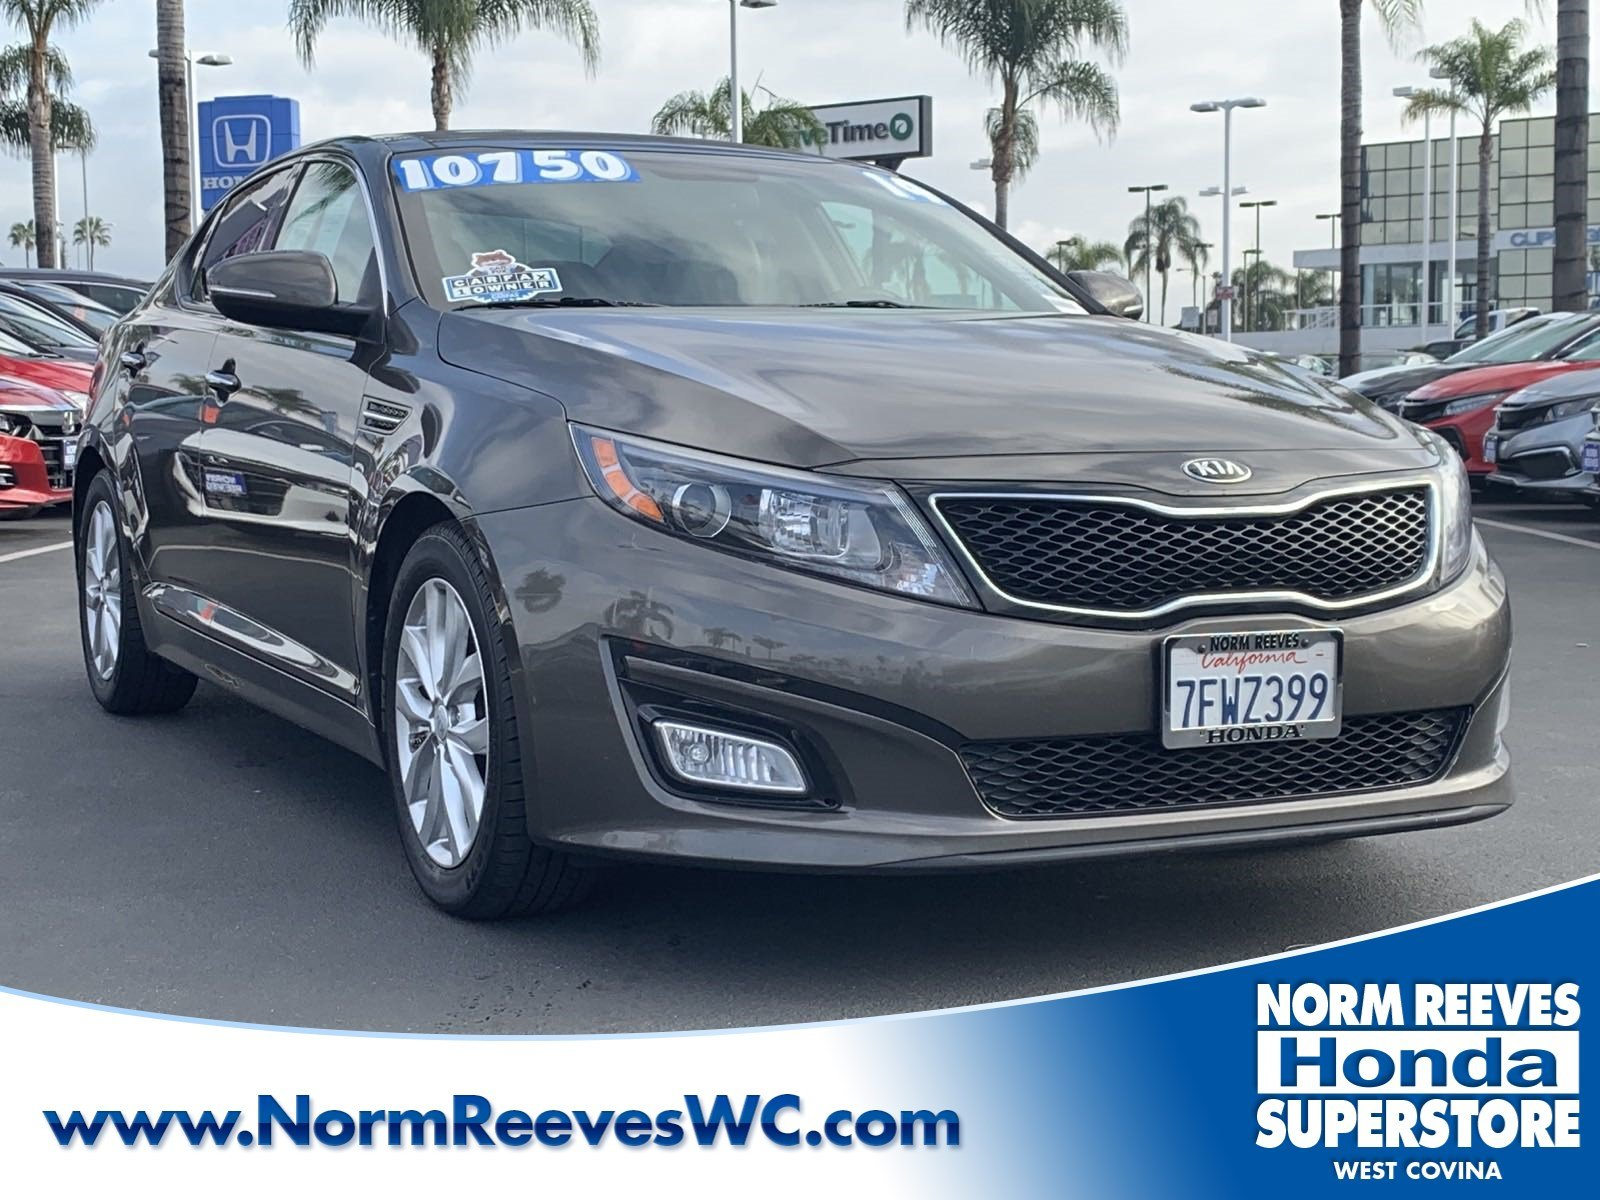 Pre Owned 2014 Kia Optima EX 4dr Car in West Covina